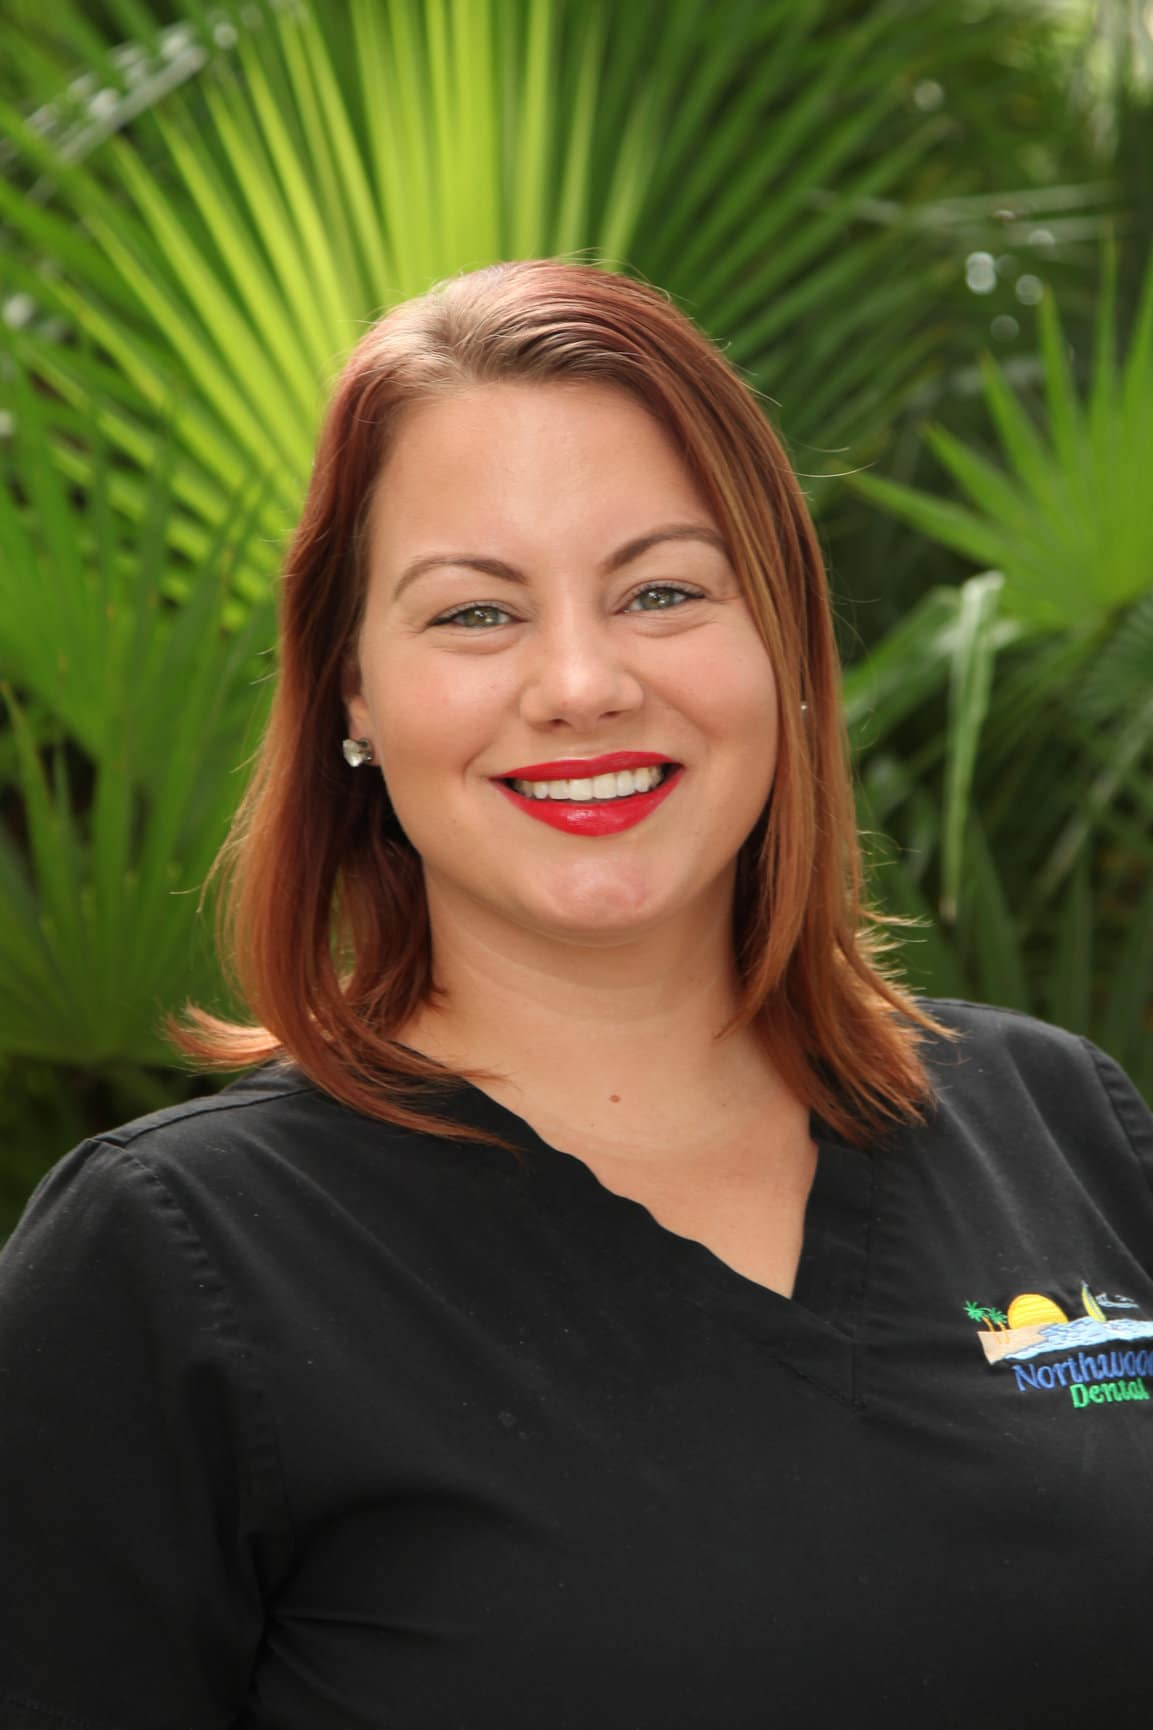 Mary Logan - Northwood Dental - Clearwater, Florida